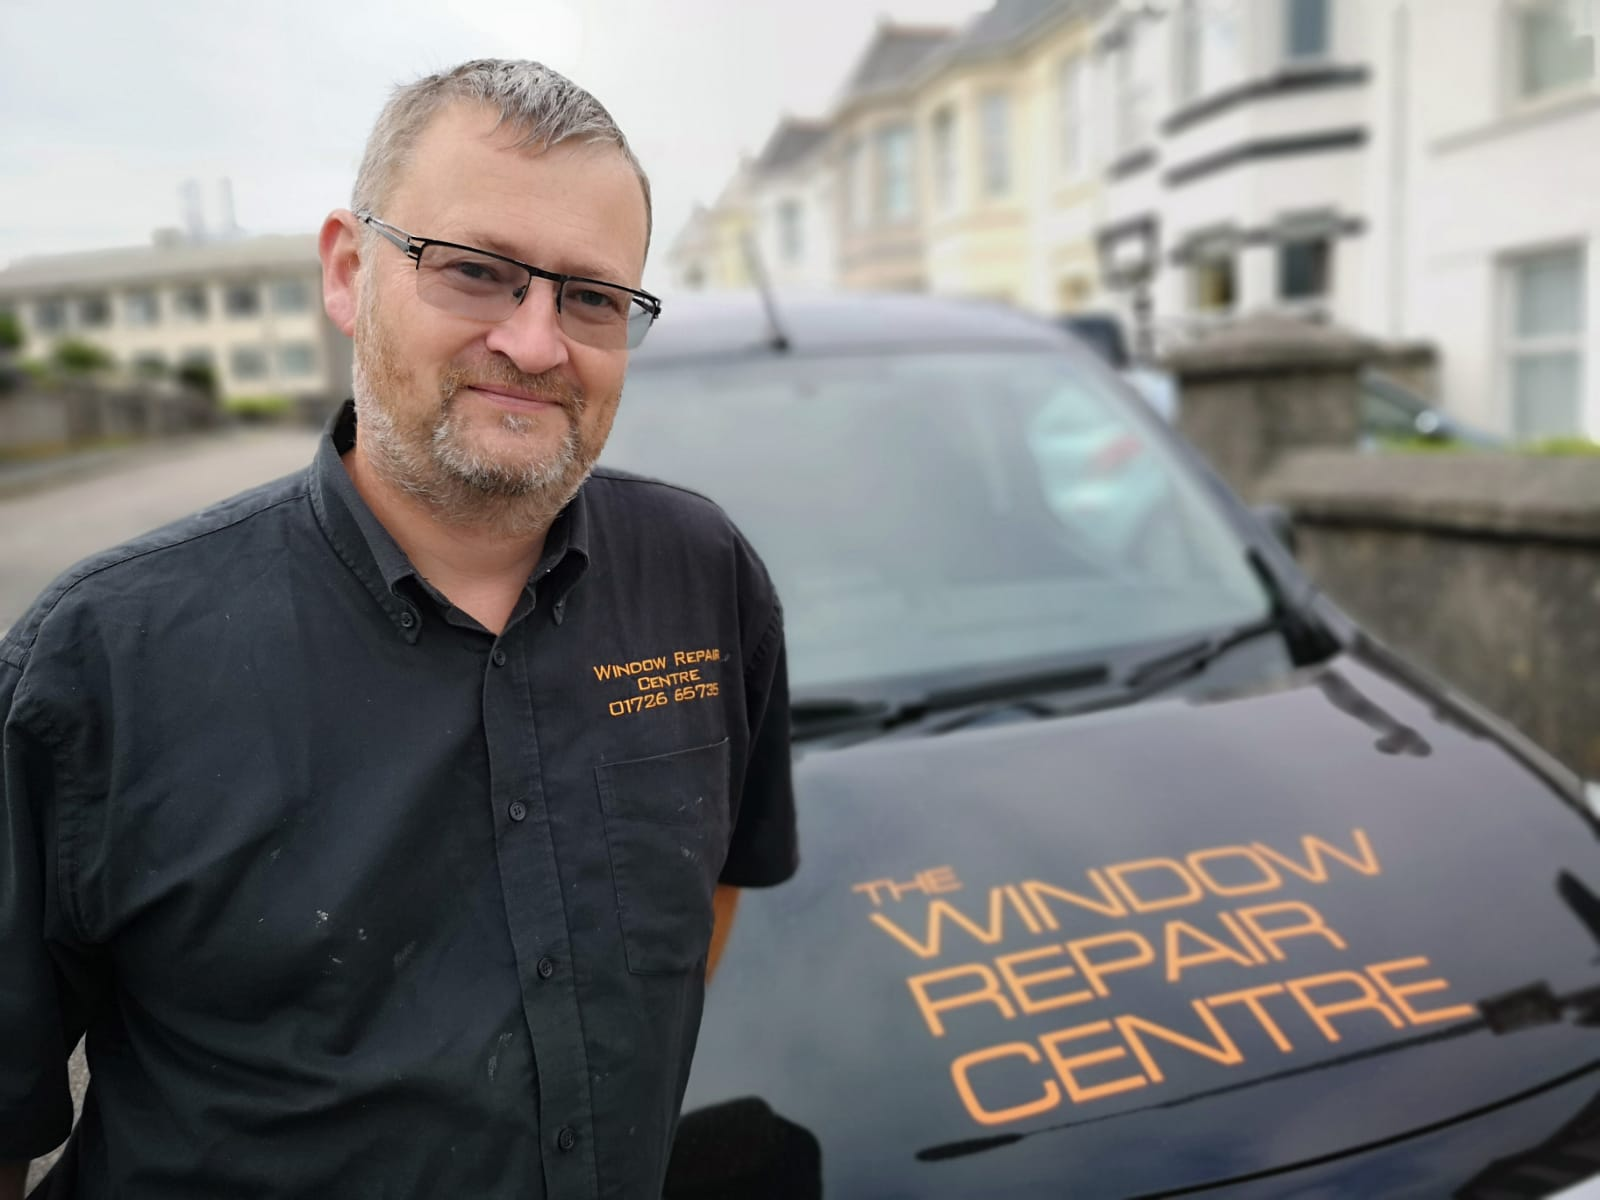 Gary at the Window Repair Centre Cornwall